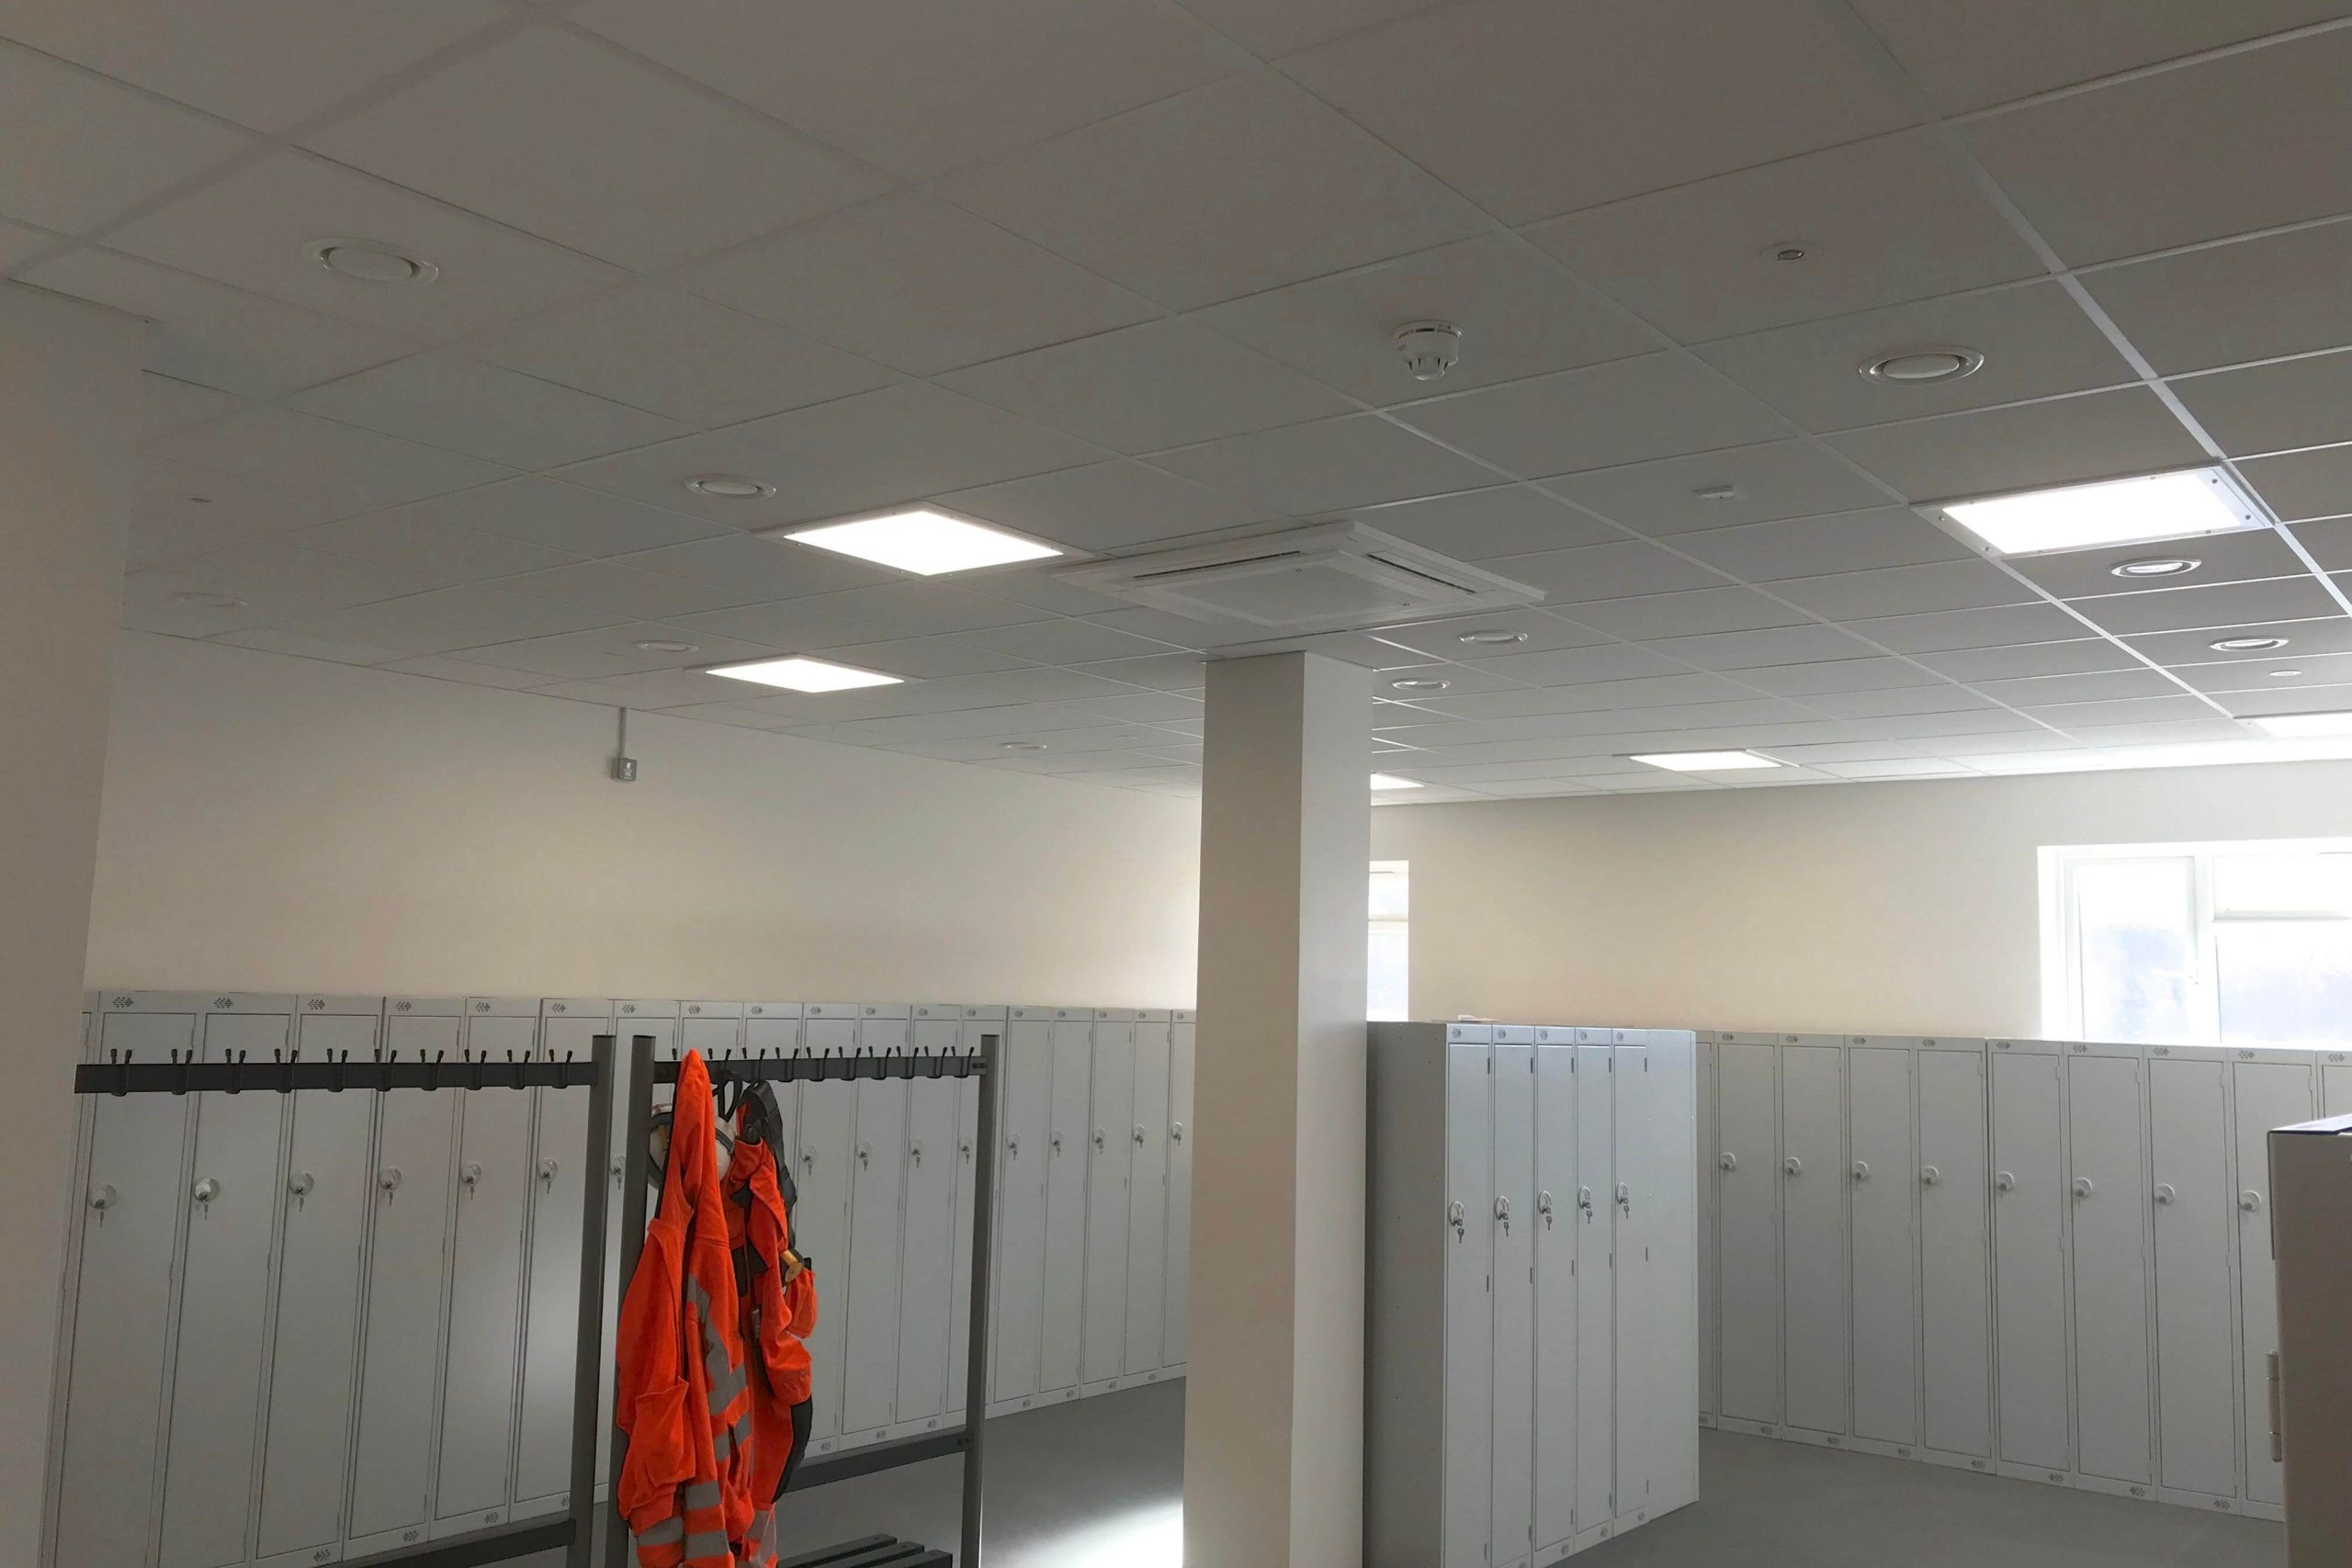 Norwood junction large commercial air conditioning solution by SubCool FM white ceiling cassette unit in locker room